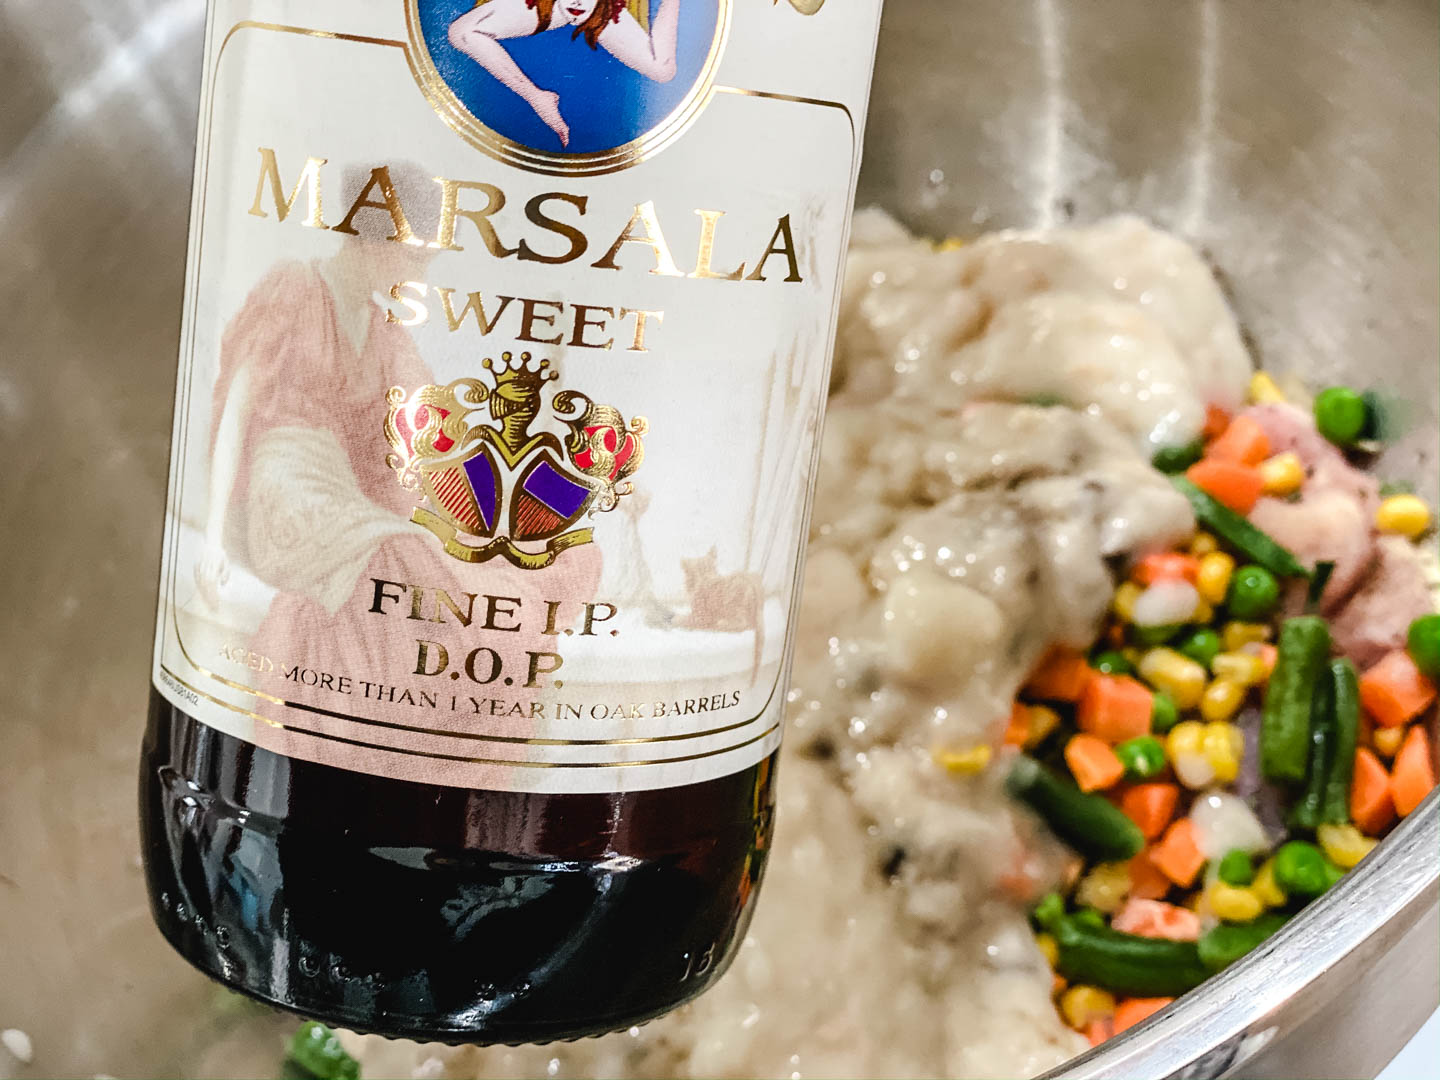 Bottle of marsala wine with chicken, veggies and soup in the background